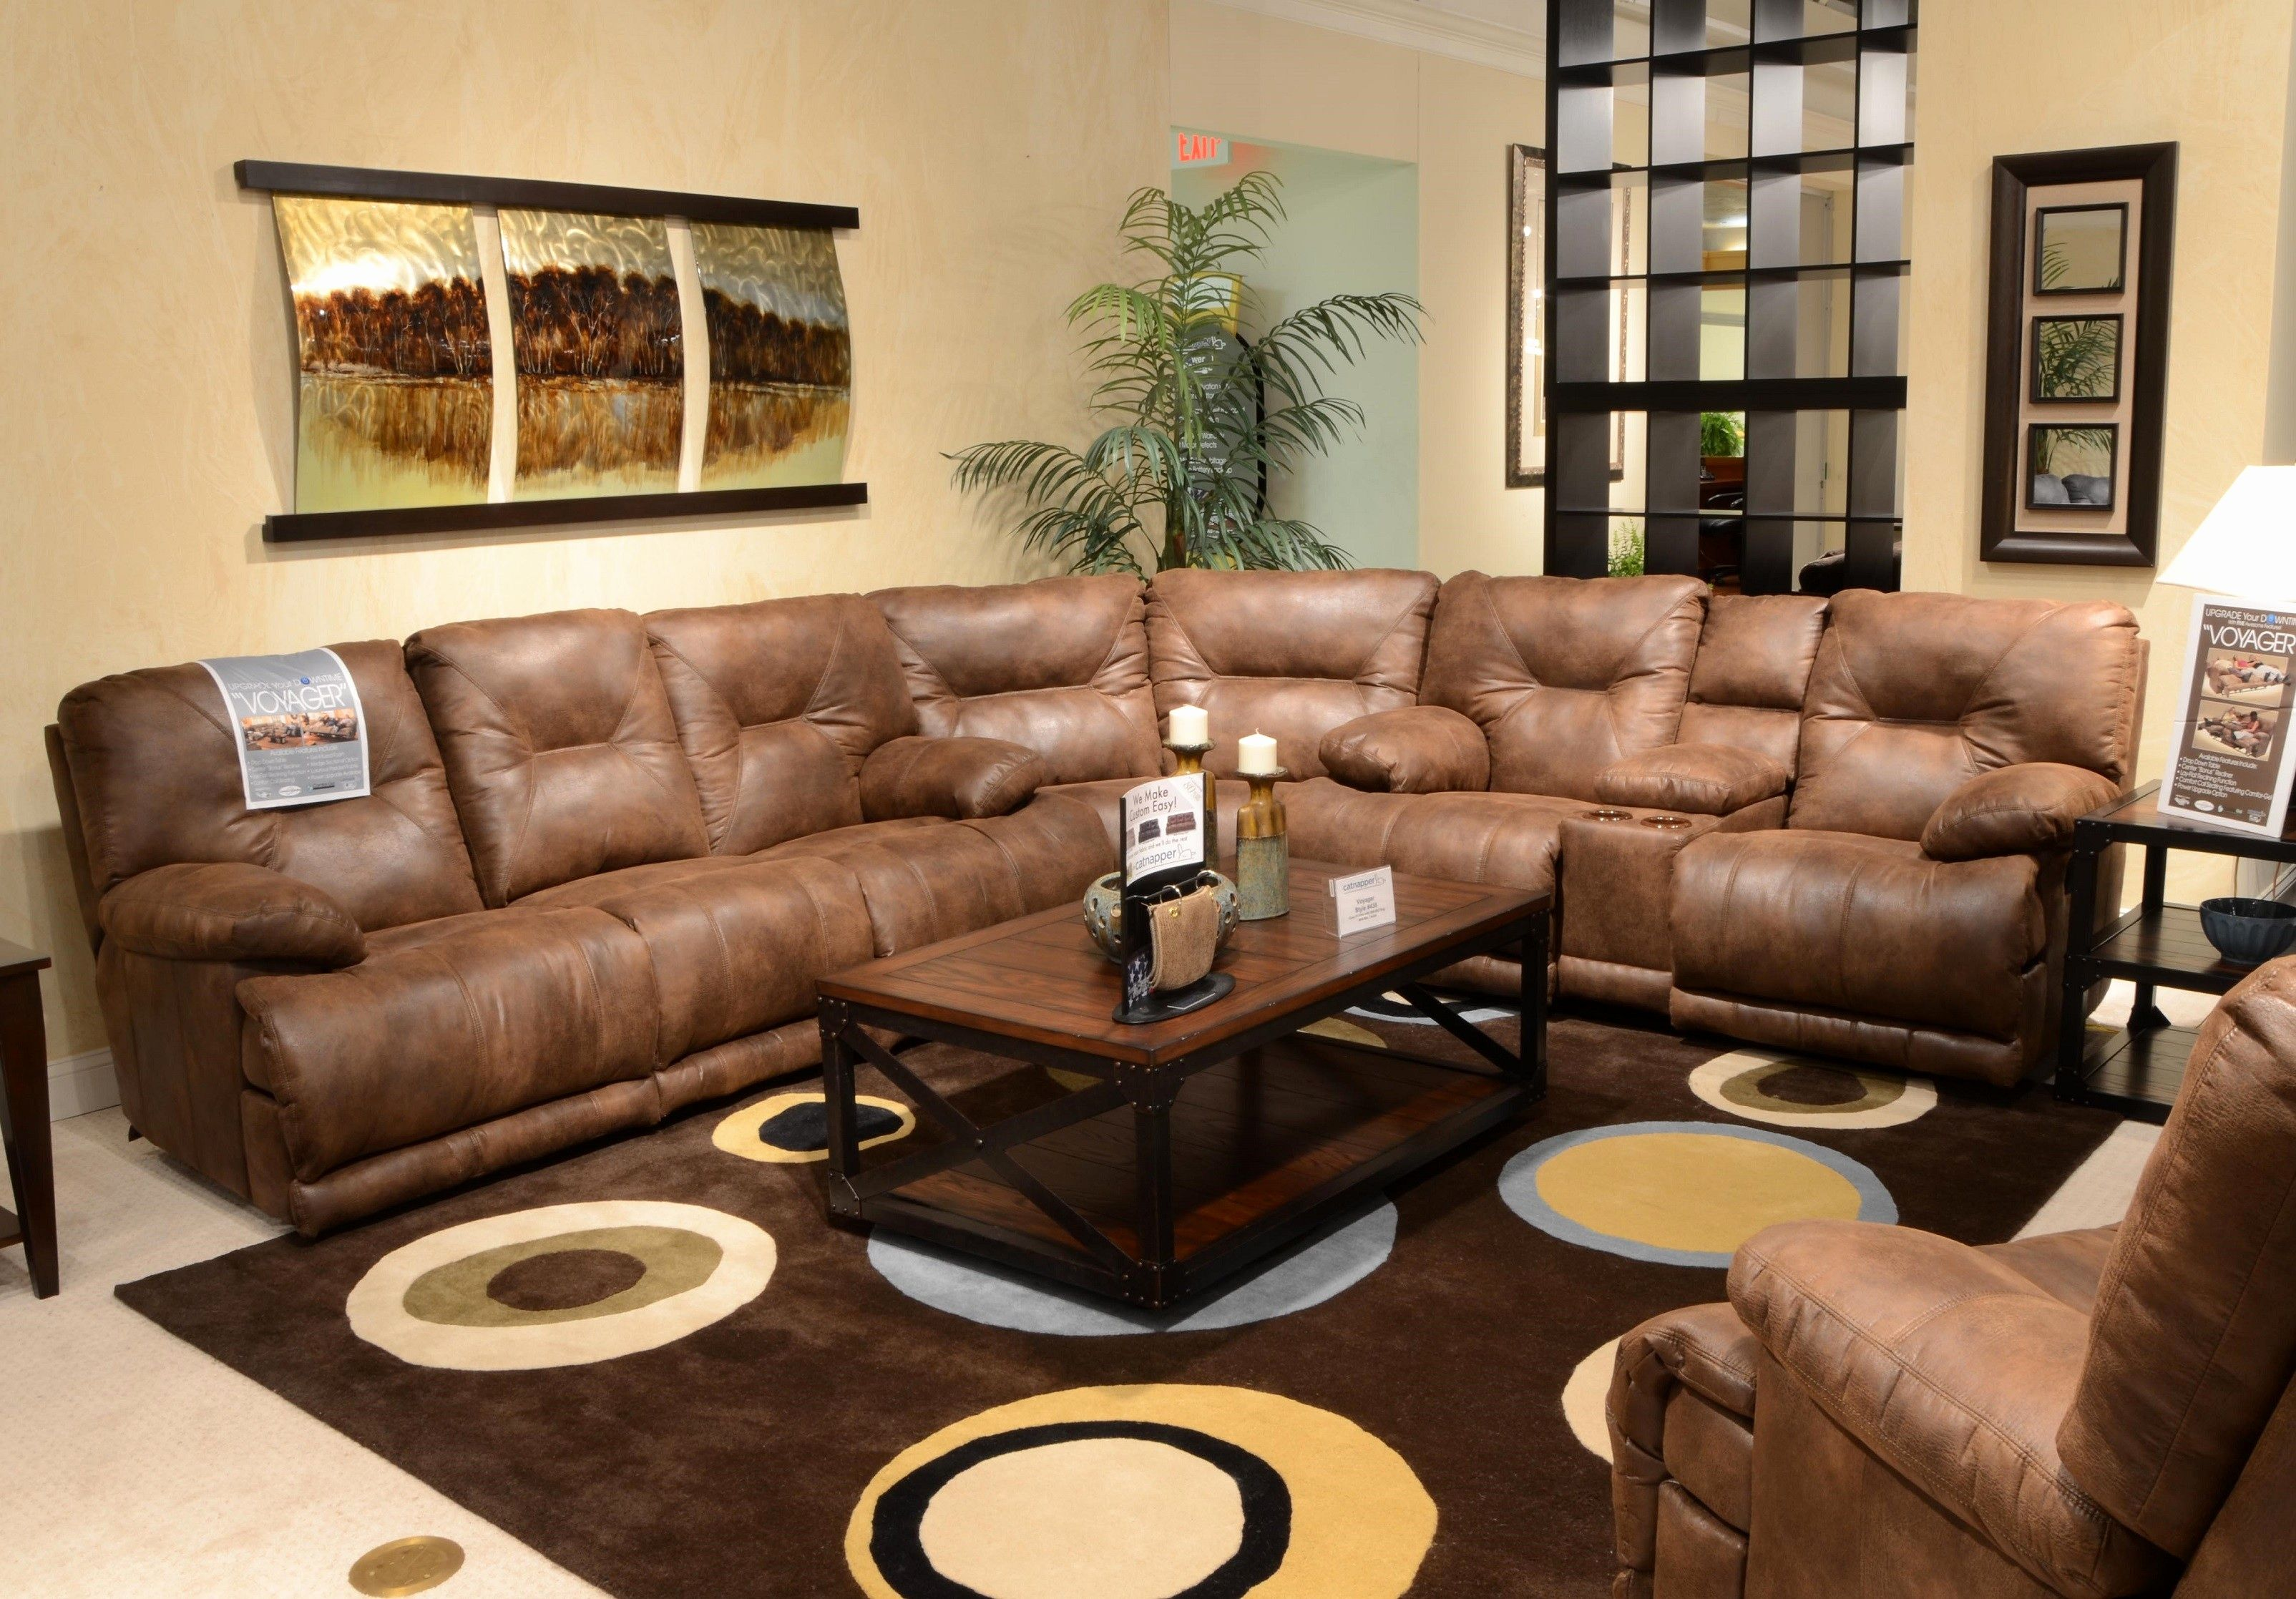 of with ashley indoor set sectionals lounge oversized comfortable chaise size chairs full ektorp clearance u living sectional large most furniture extra boy shaped sofas couches sofa ikea room couch lazy recliners